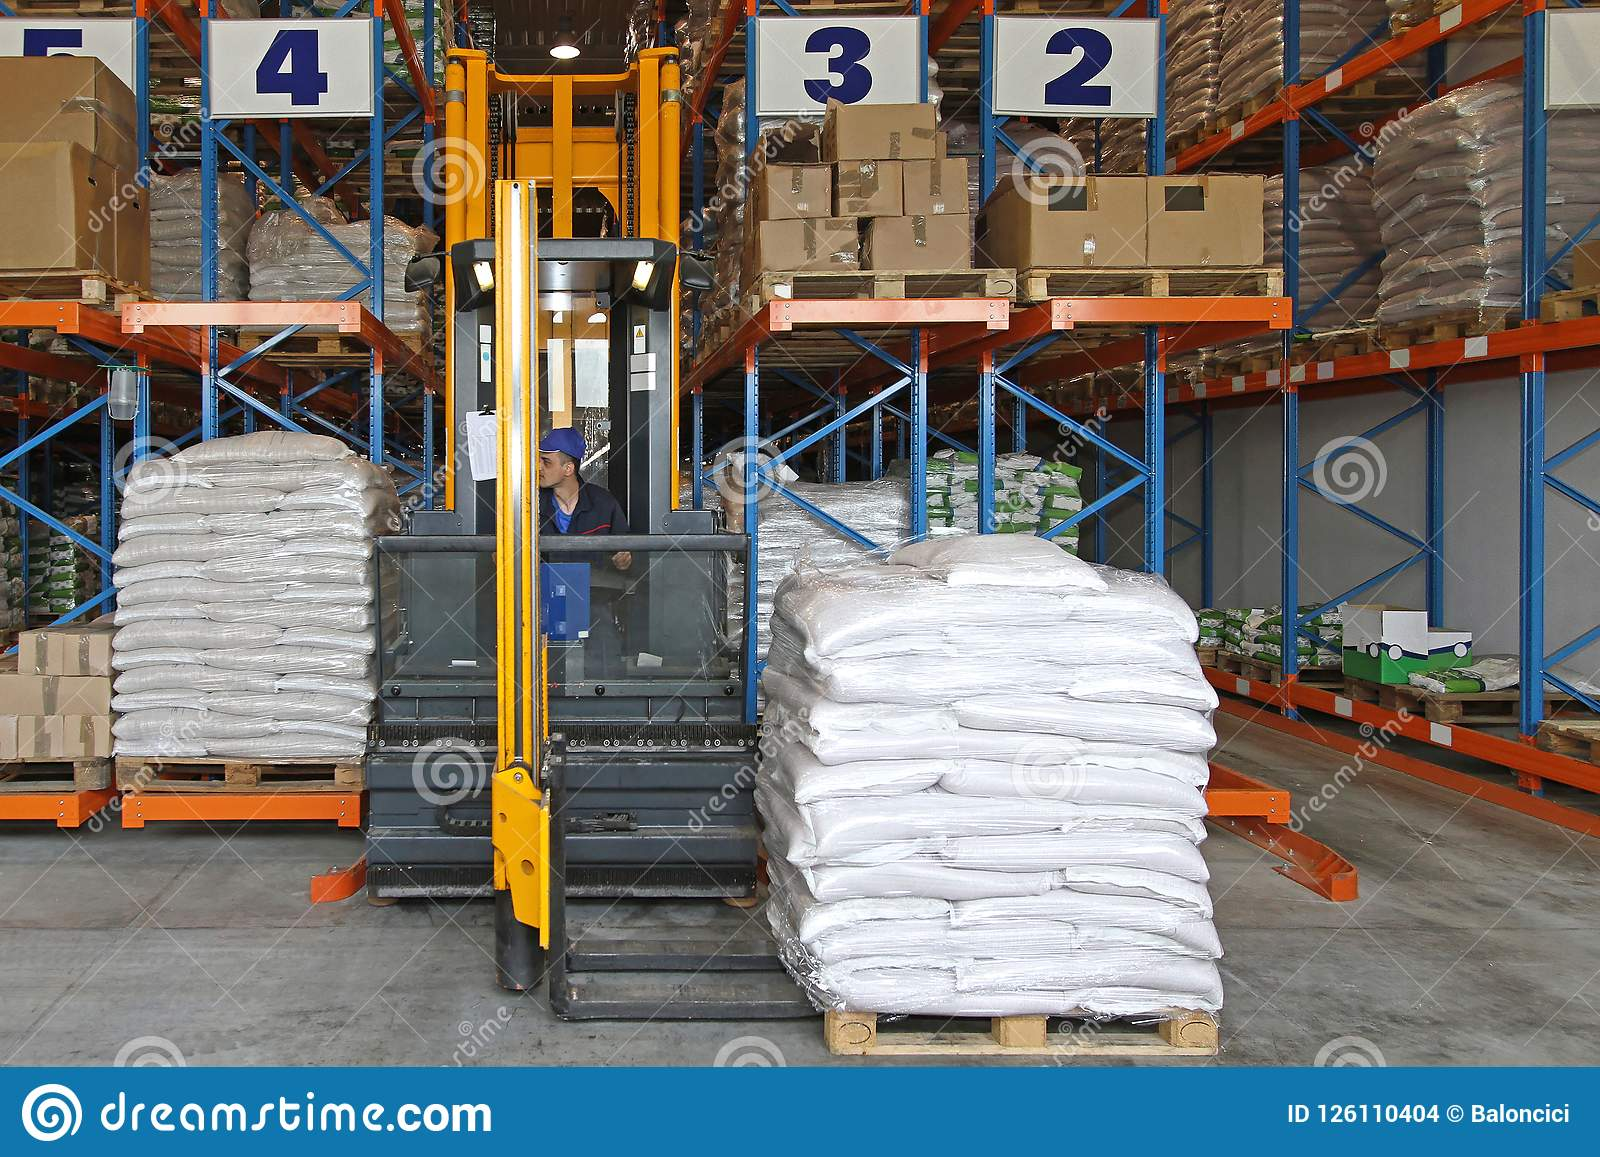 Pallet Stacker stock photo  Image of loading, cargo - 126110404